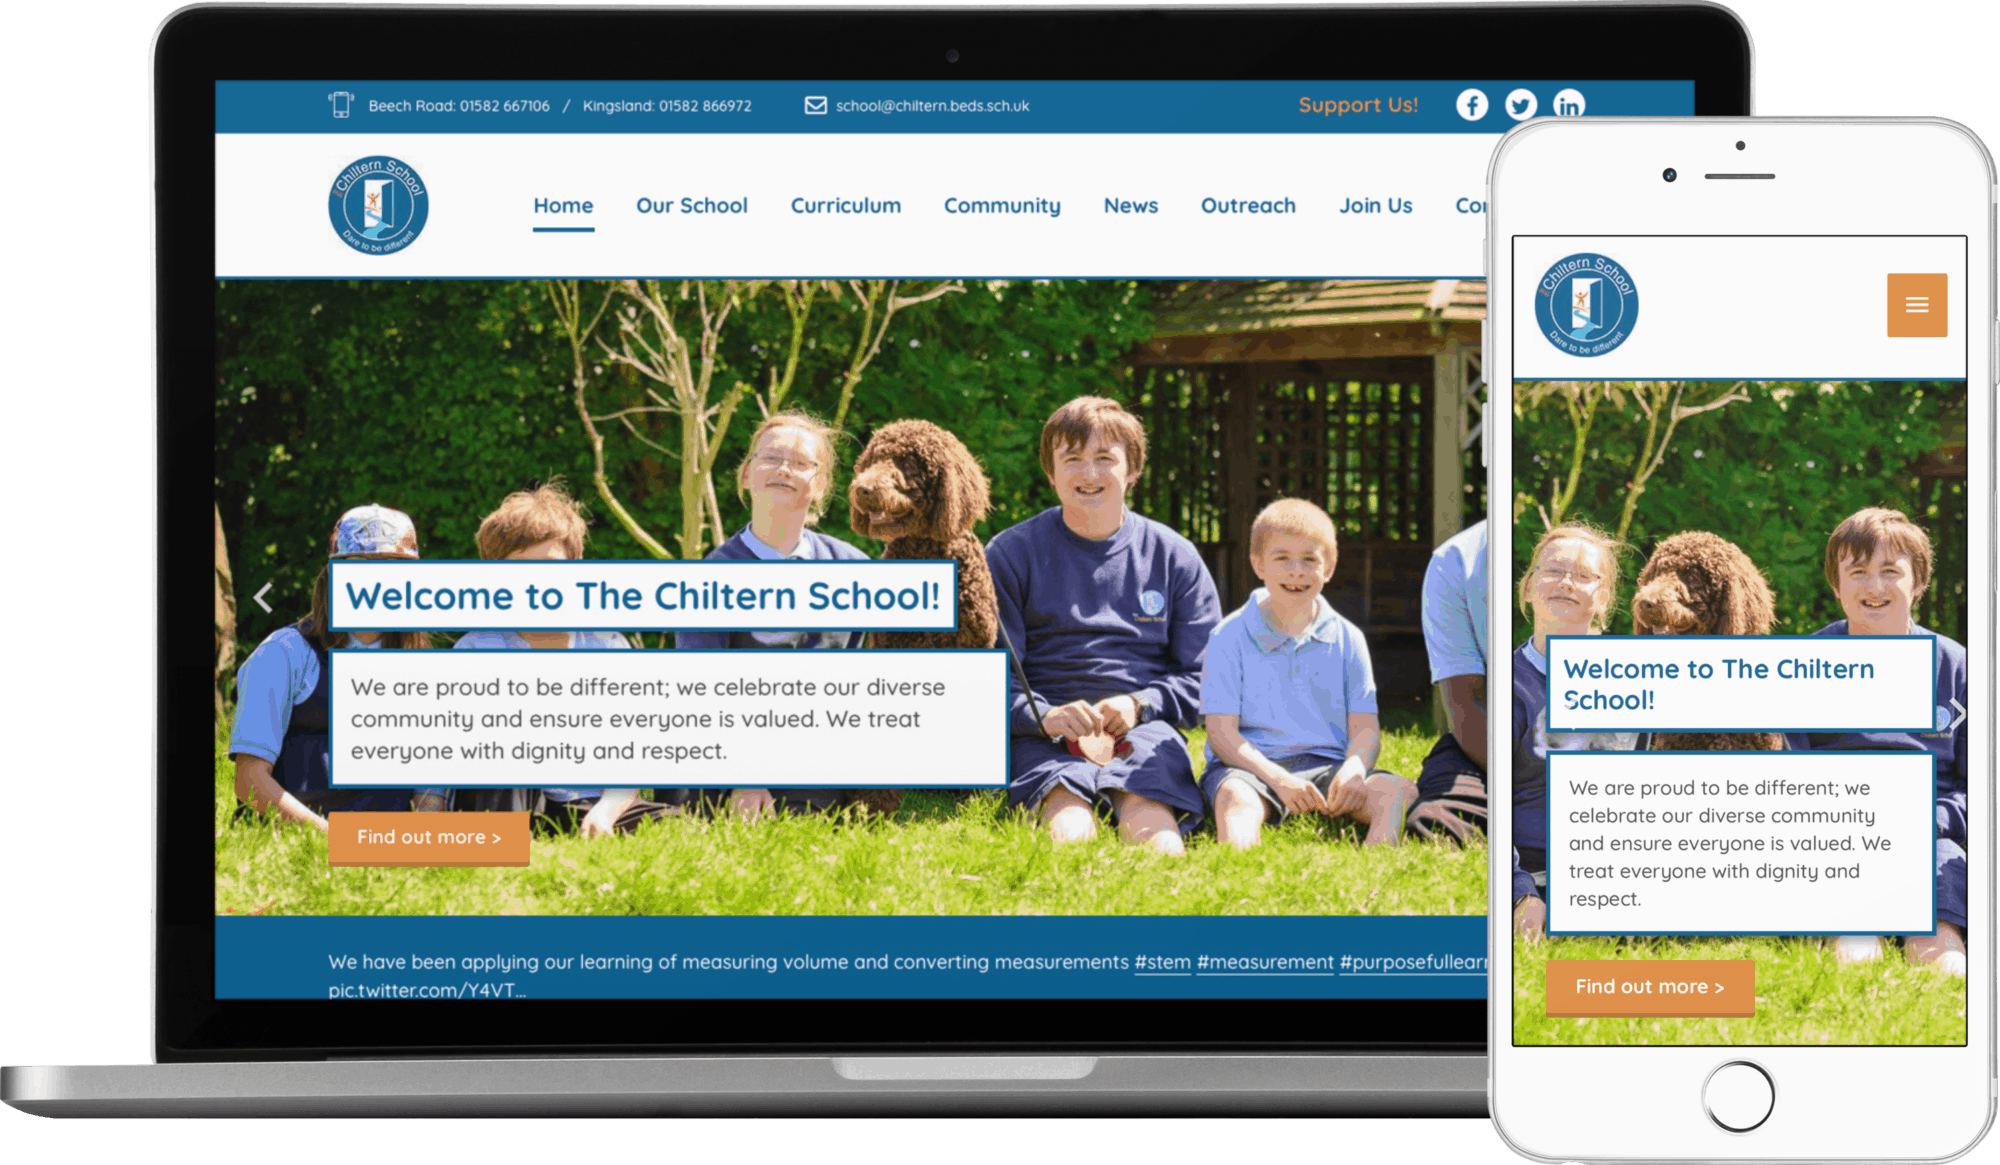 The Chiltern School website